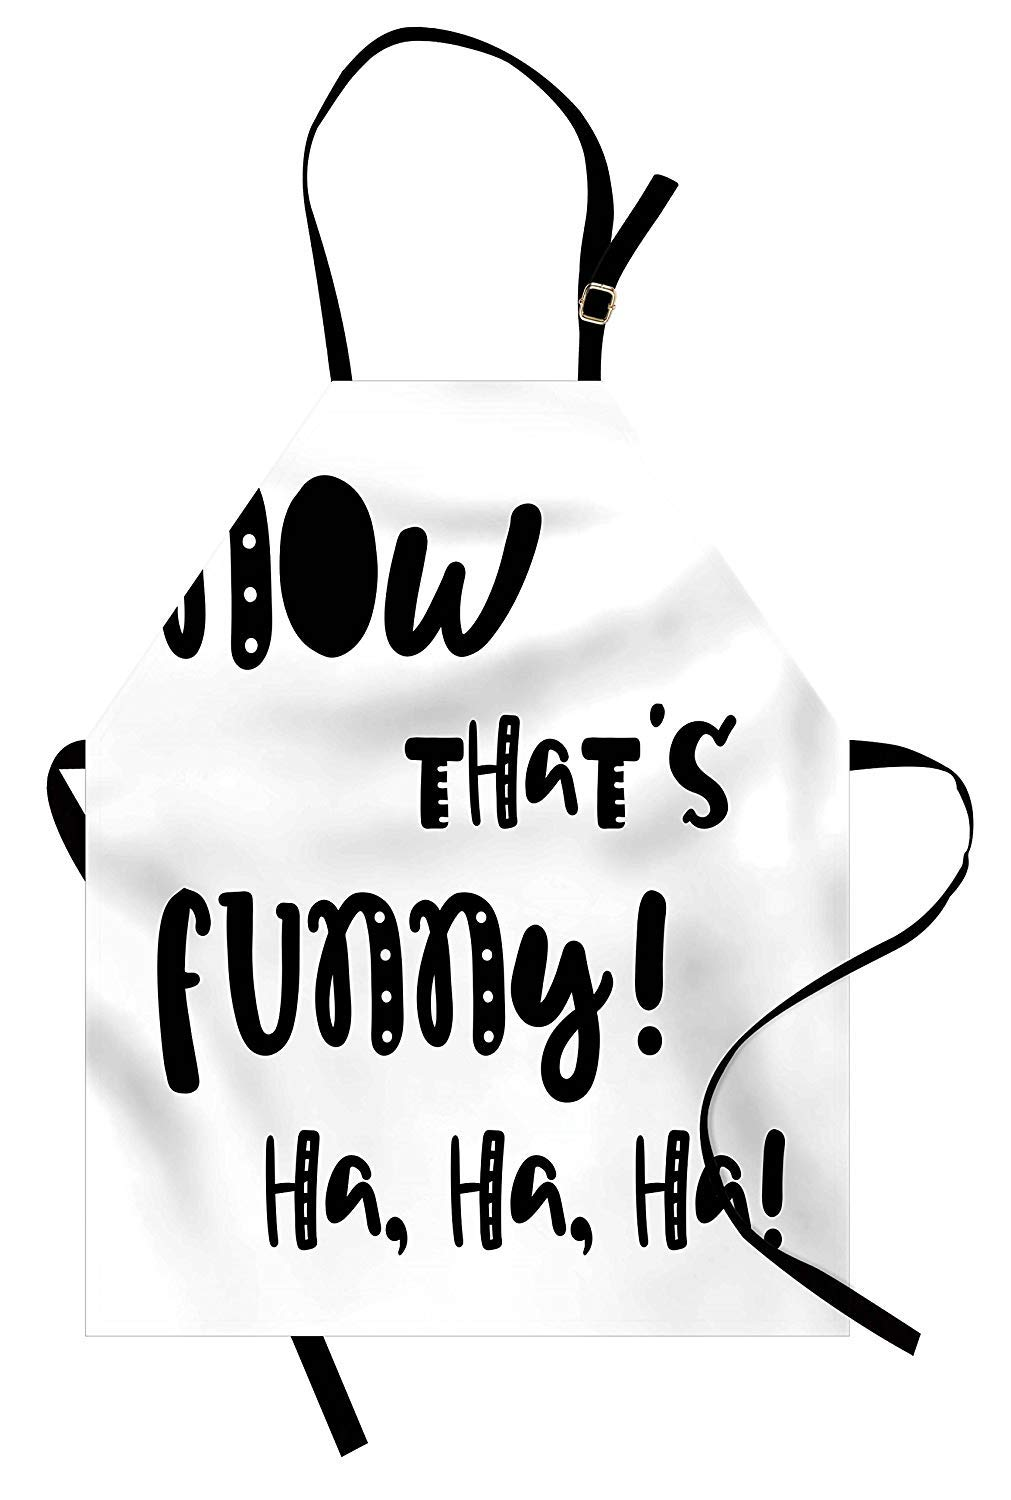 Sodika funny words apron kitchen bib apron adjustable for cooking baking gardening unisex machine washable vintage doodle typography with fun letters